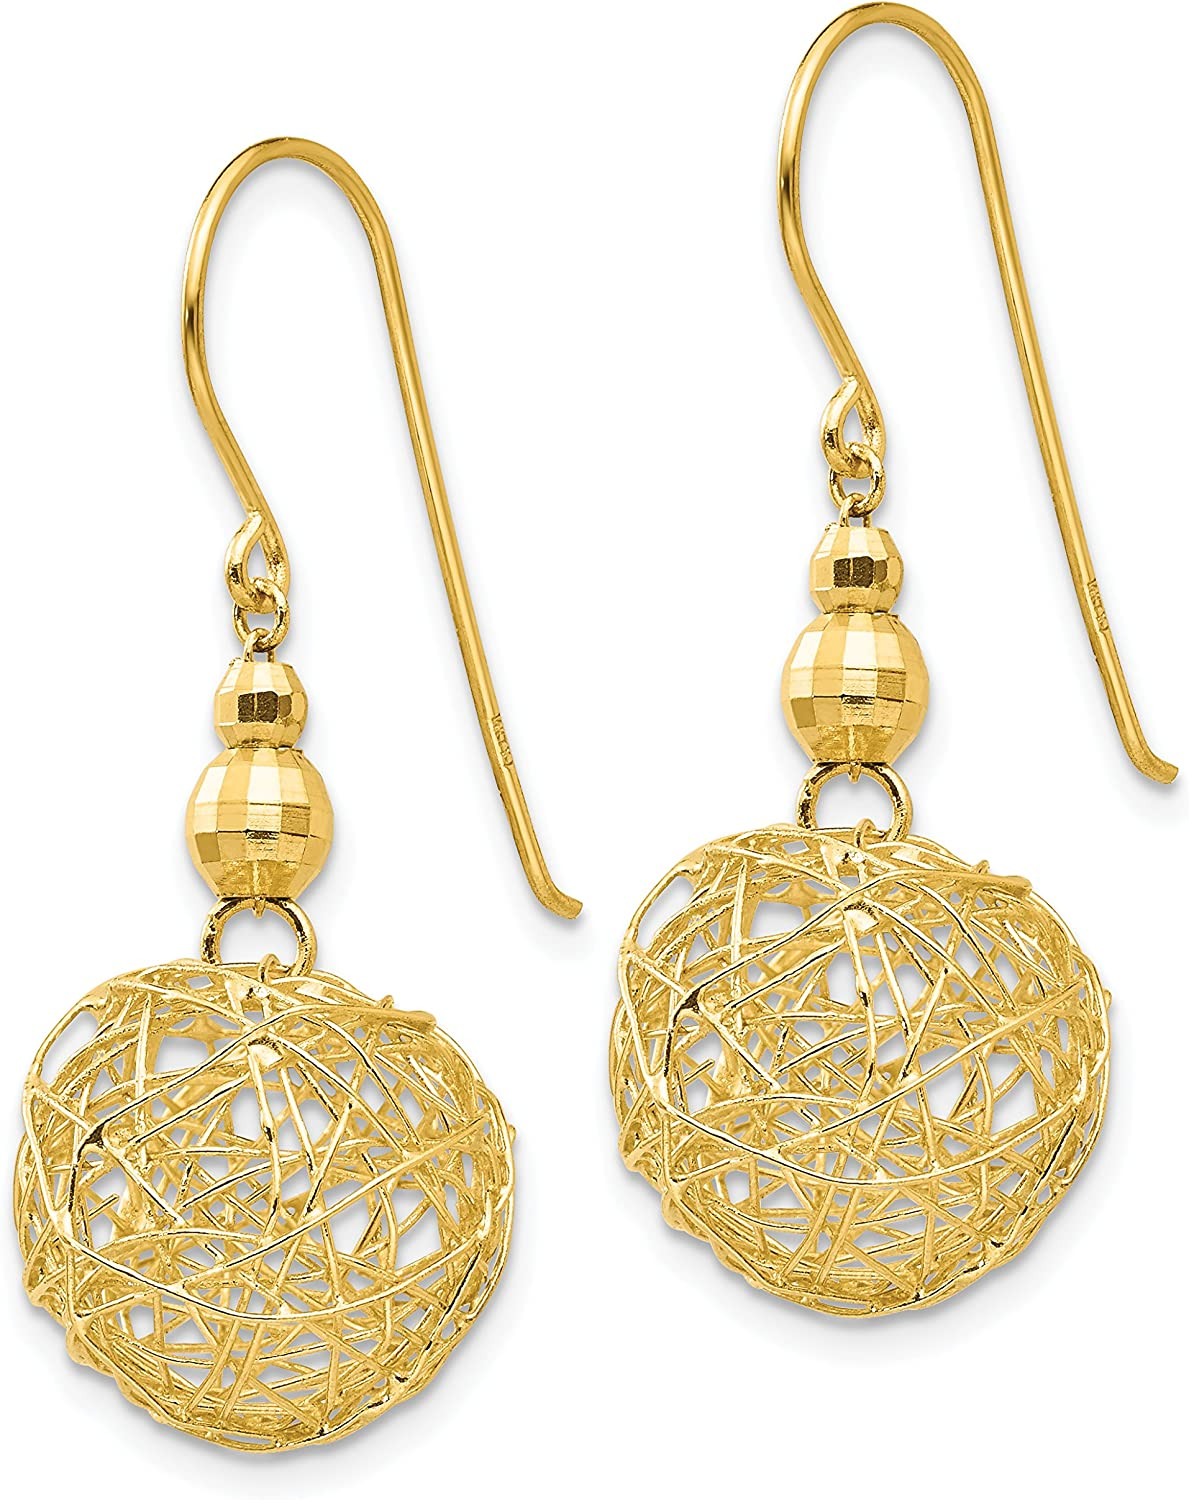 14K Yellow Gold Mirror Bead and Wire Ball Earrings (Approximate Measurements 31mm x 13mm)